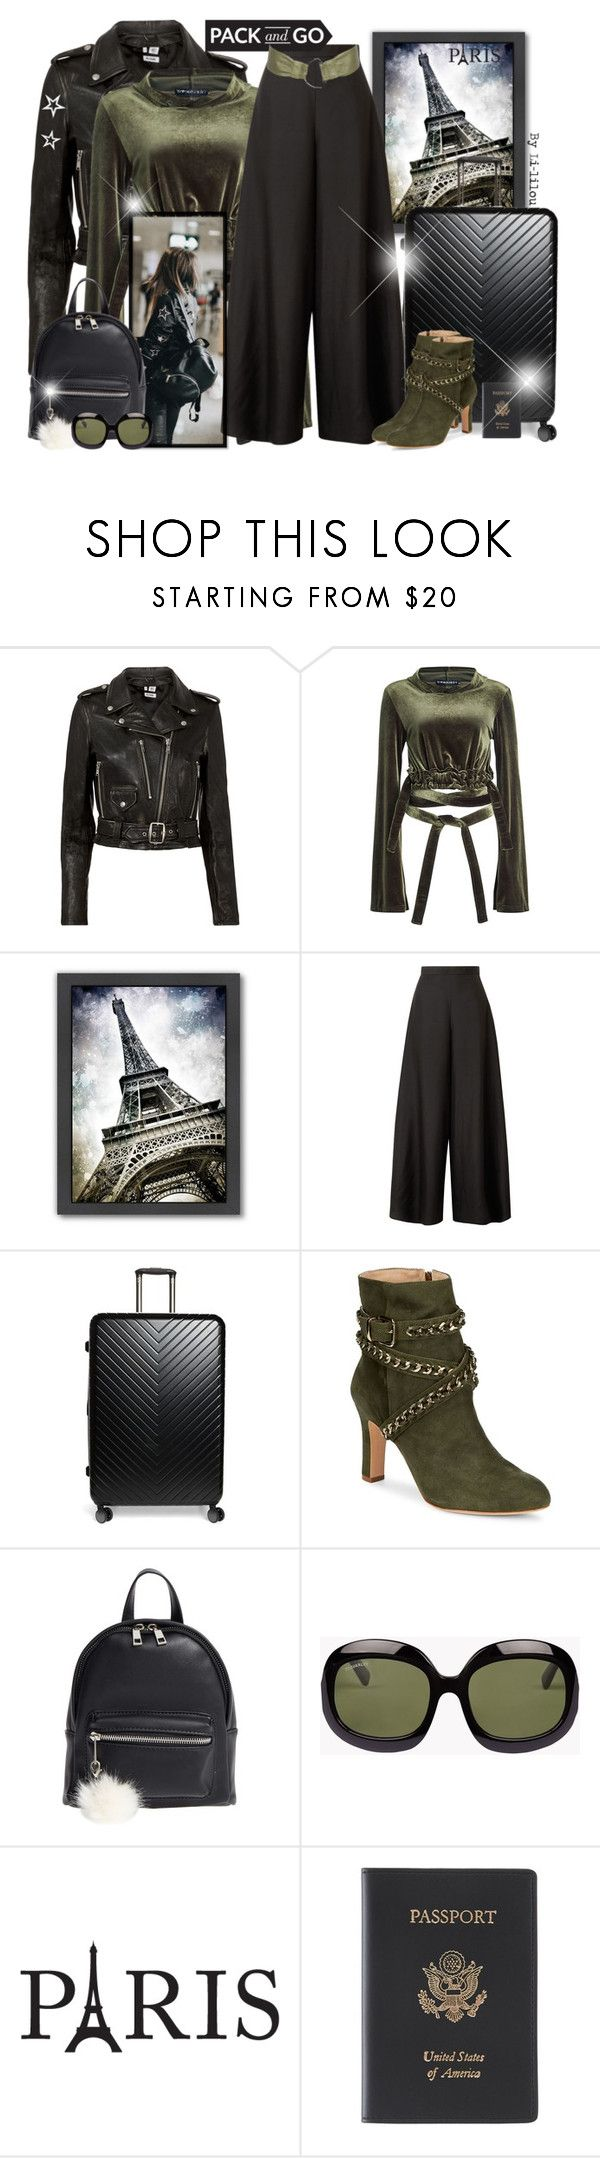 """""""~Paris Fashion Week ~"""" by li-lilou ❤ liked on Polyvore featuring RE/DONE, Y/Project, Americanflat, The Row, Nordstrom, Schutz, BP., Stephen Collins, Royce Leather and parisfashionweek"""